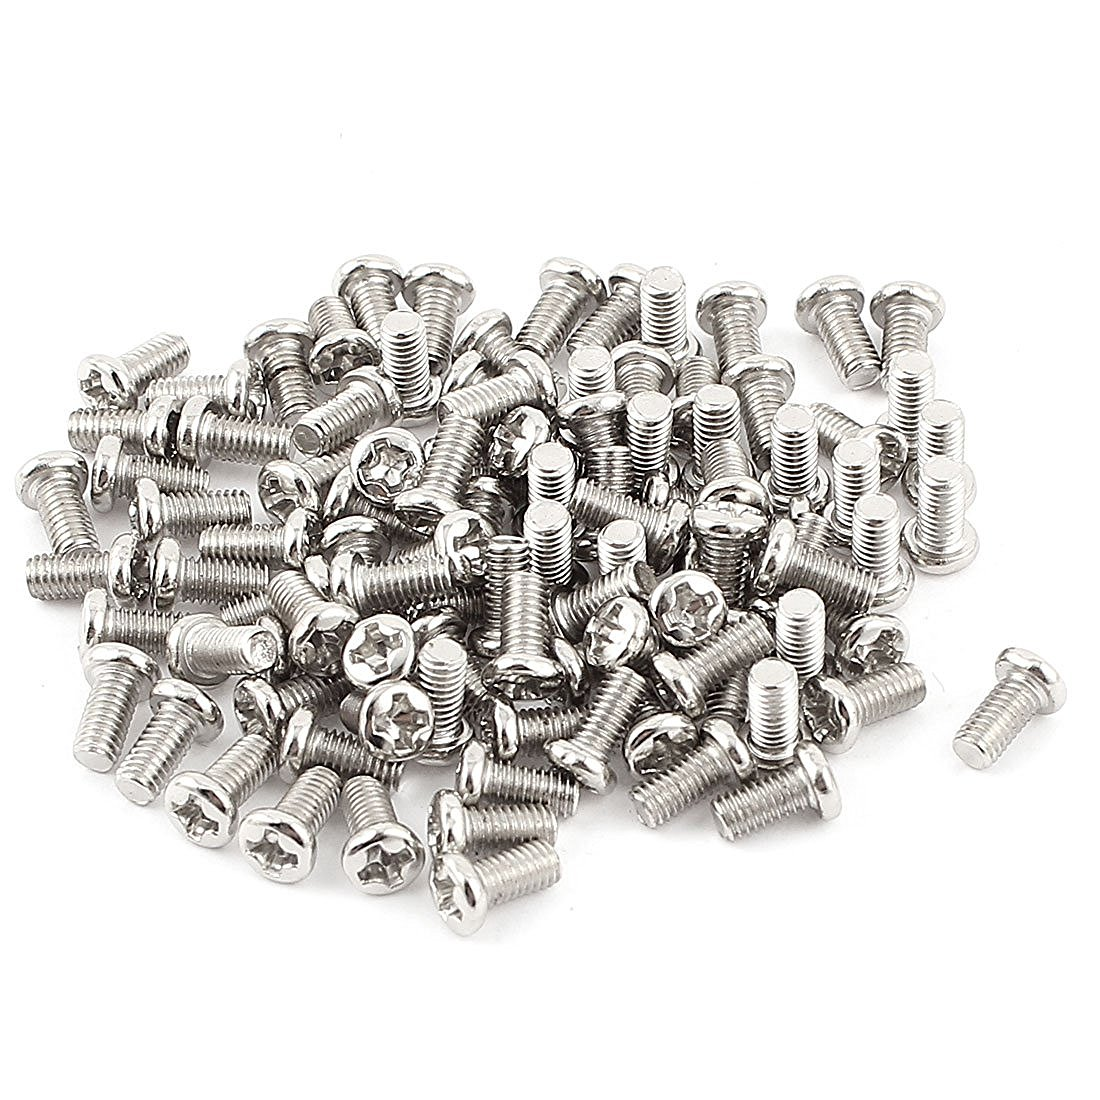 100pcs <font><b>M3x6mm</b></font> Recessed Crosshead Cross Head Threaded <font><b>Screw</b></font> Fasten Bolt image